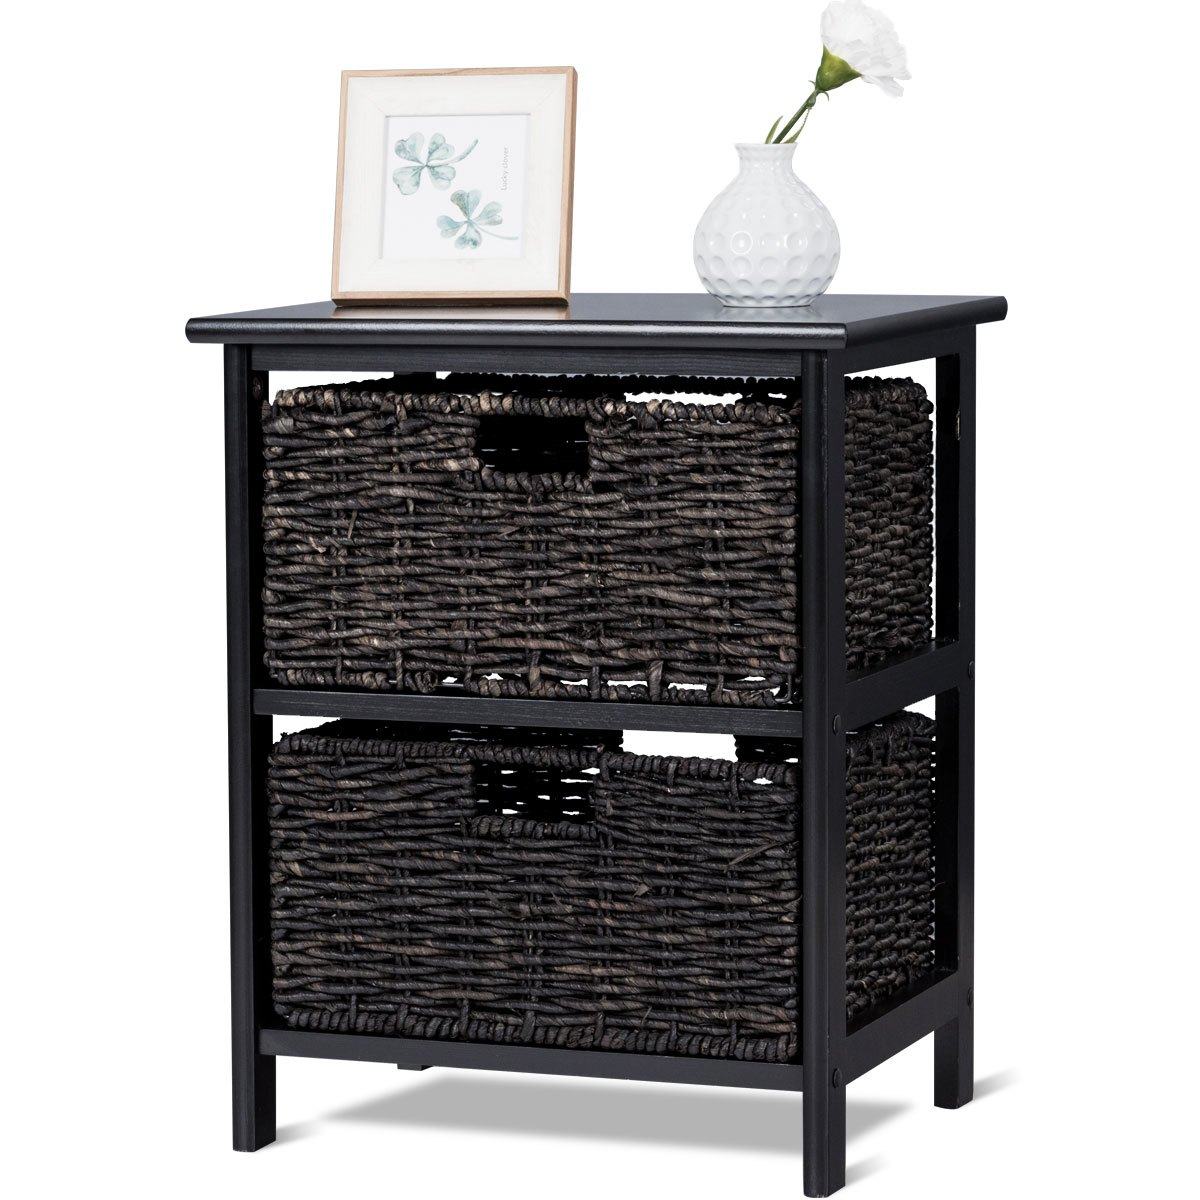 way wood end accent table home furniture living room with baskets night stand storage square patio covers barn style doors affordable dining sets pub set inch wide nightstand pier